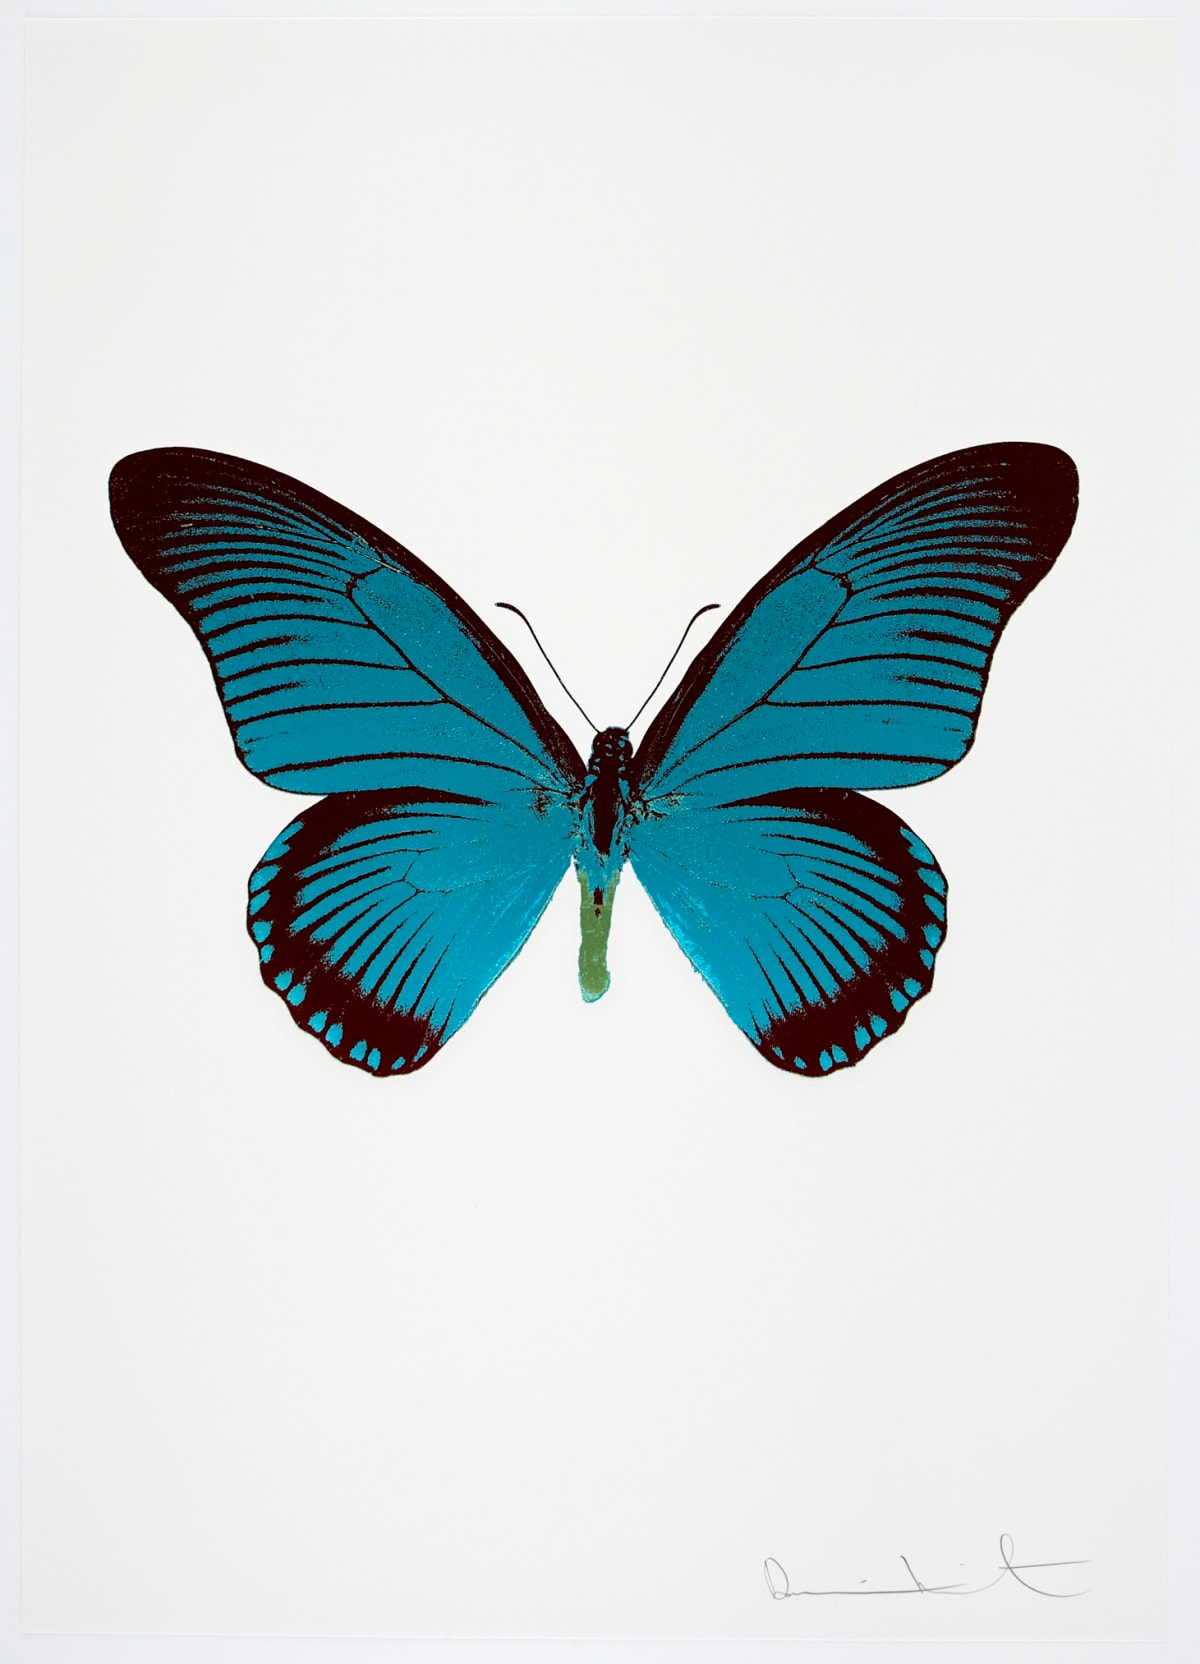 Damien Hirst The Souls IV - Topaz/Burgundy/Leaf Green, 2010 2 colour foil block on 300gsm Arches 88 archival paper. Signed and numbered. Published by Paul Stolper and Other Criteria 72 x 51cm OC7998 / 1418-21 Edition of 15